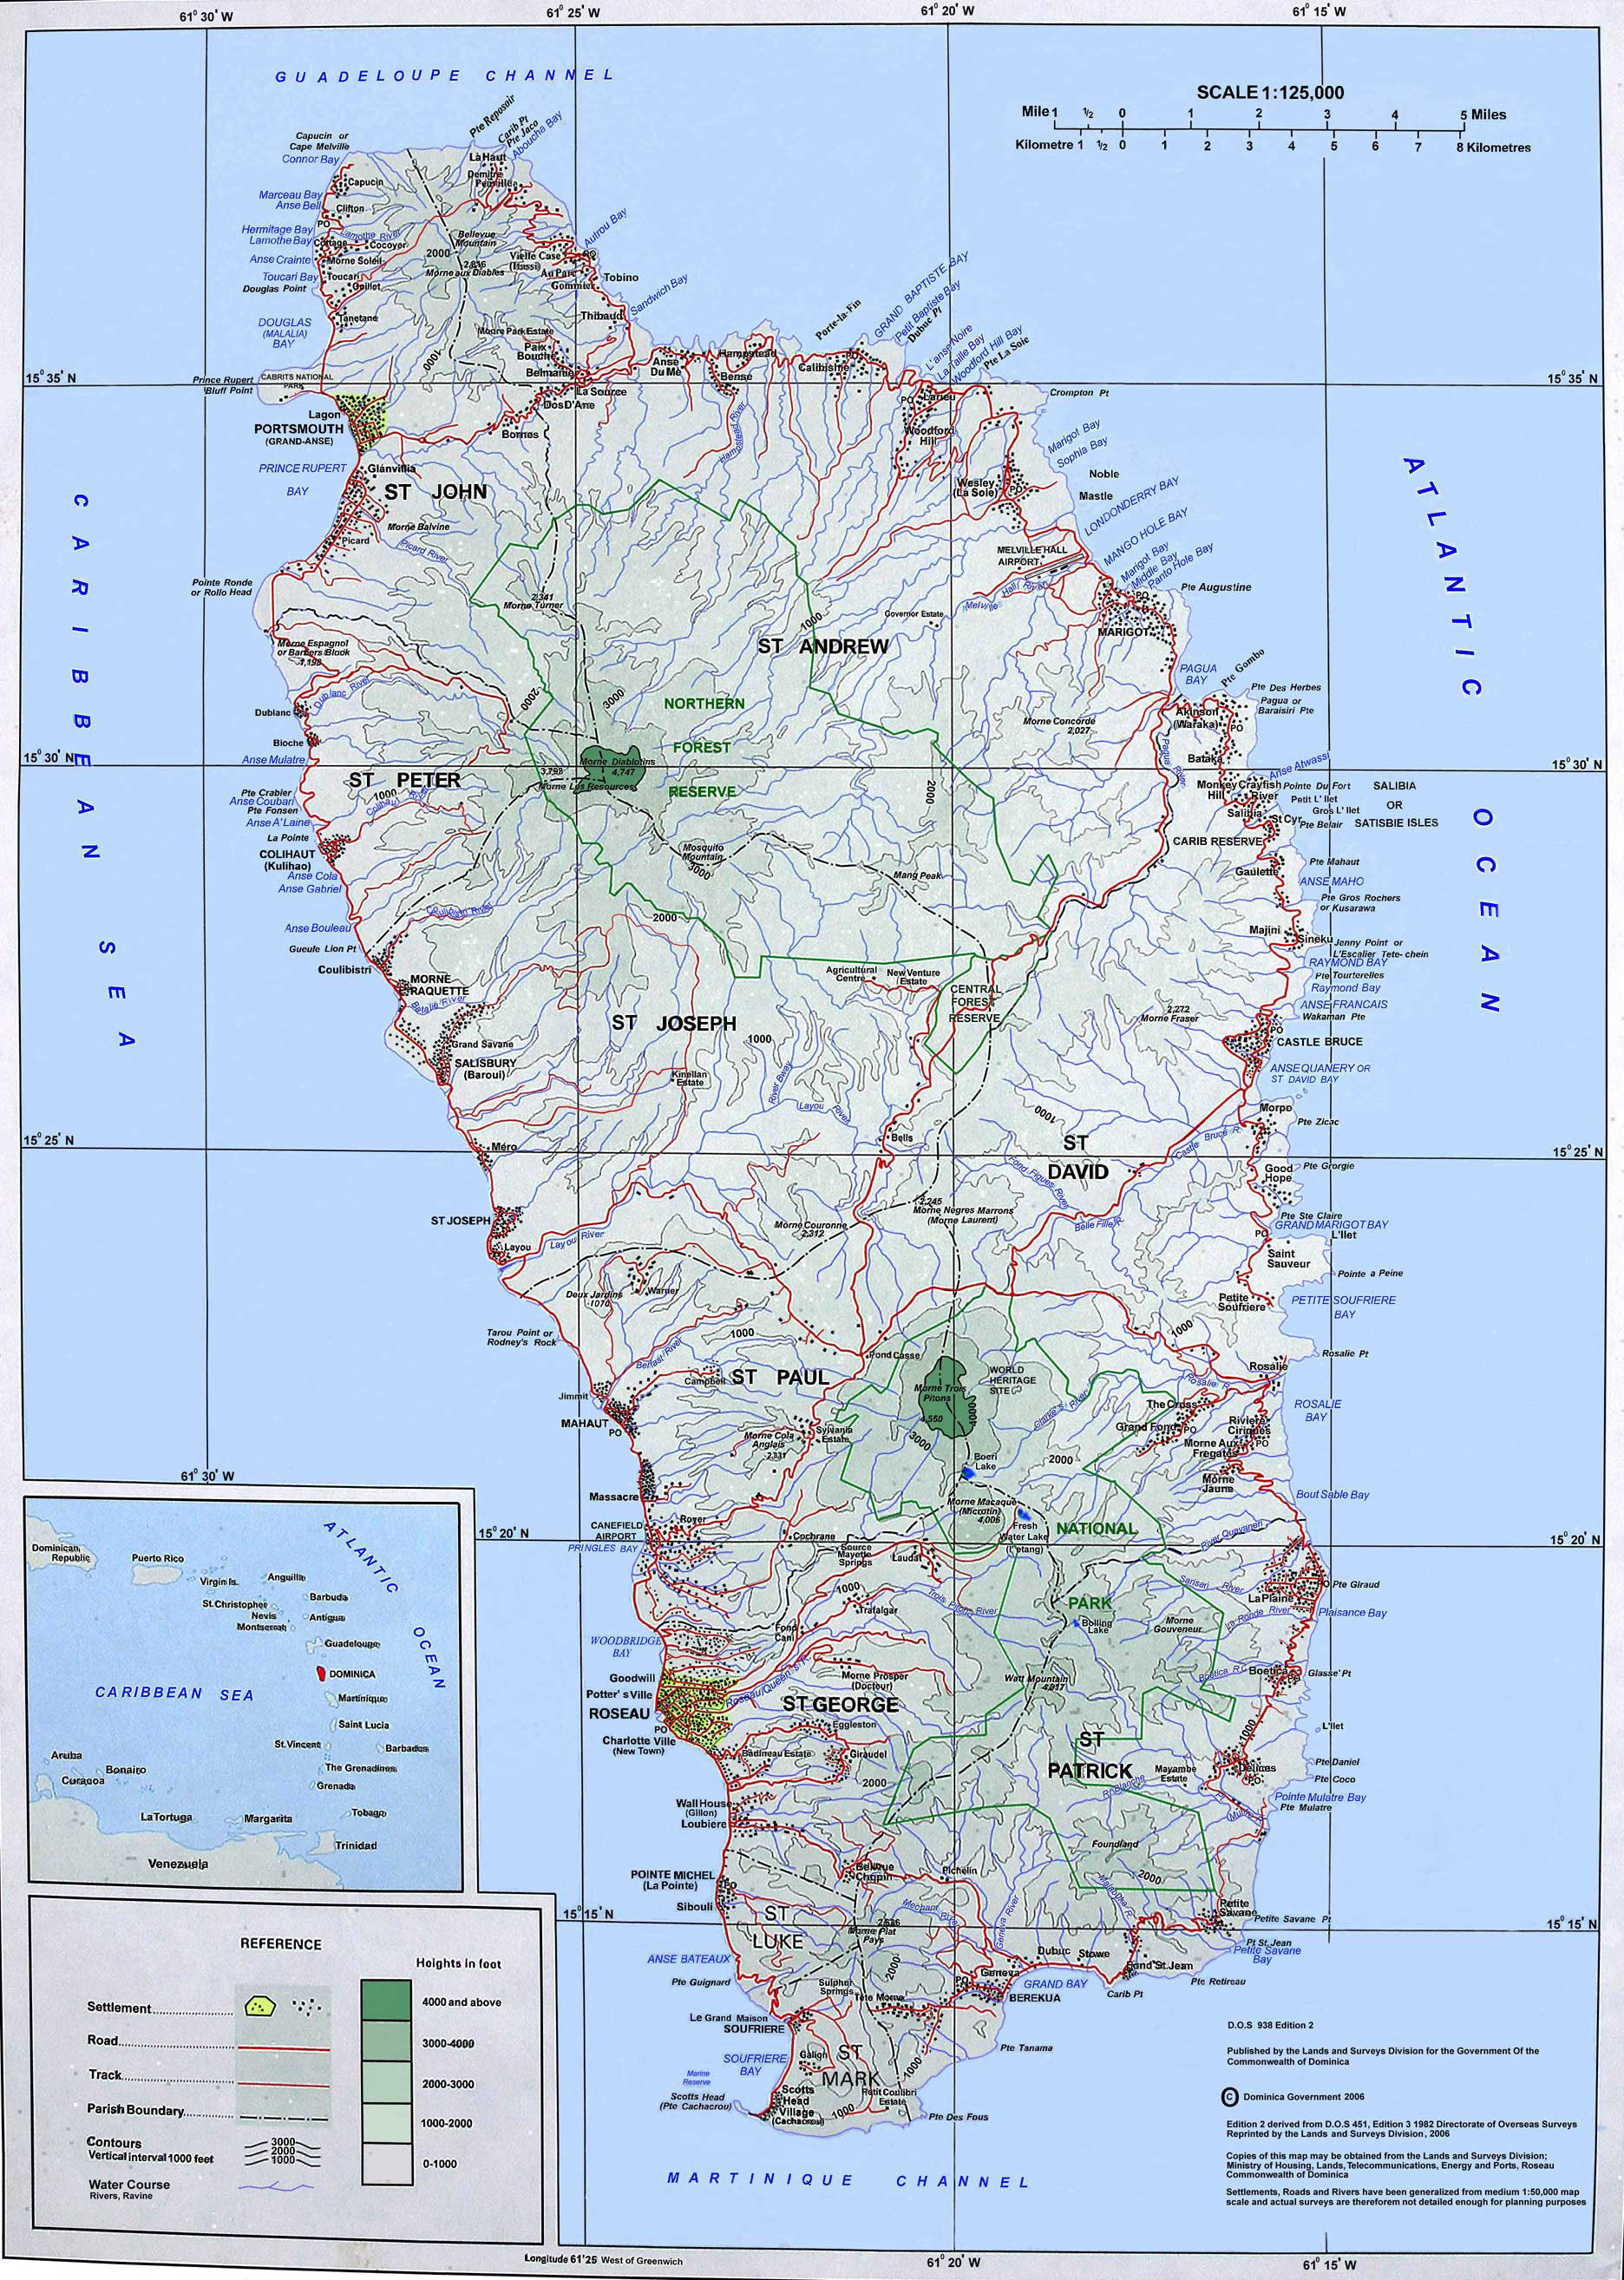 Large detailed topographical map of Dominica island ... on fiji map, el salvador map, st. lucia map, grenada map, martinique map, costa rica map, georgia country map, cayman islands, dominican republic, st thomas map, saint lucia, iceland map, malta map, zimbabwe map, the bahamas, americas map, montserrat map, trinidad and tobago, barbados map, turks and caicos islands, maldives map, antigua and barbuda, caribbean map, st. kitts map, haiti map, jamaica map, dominican republic map,